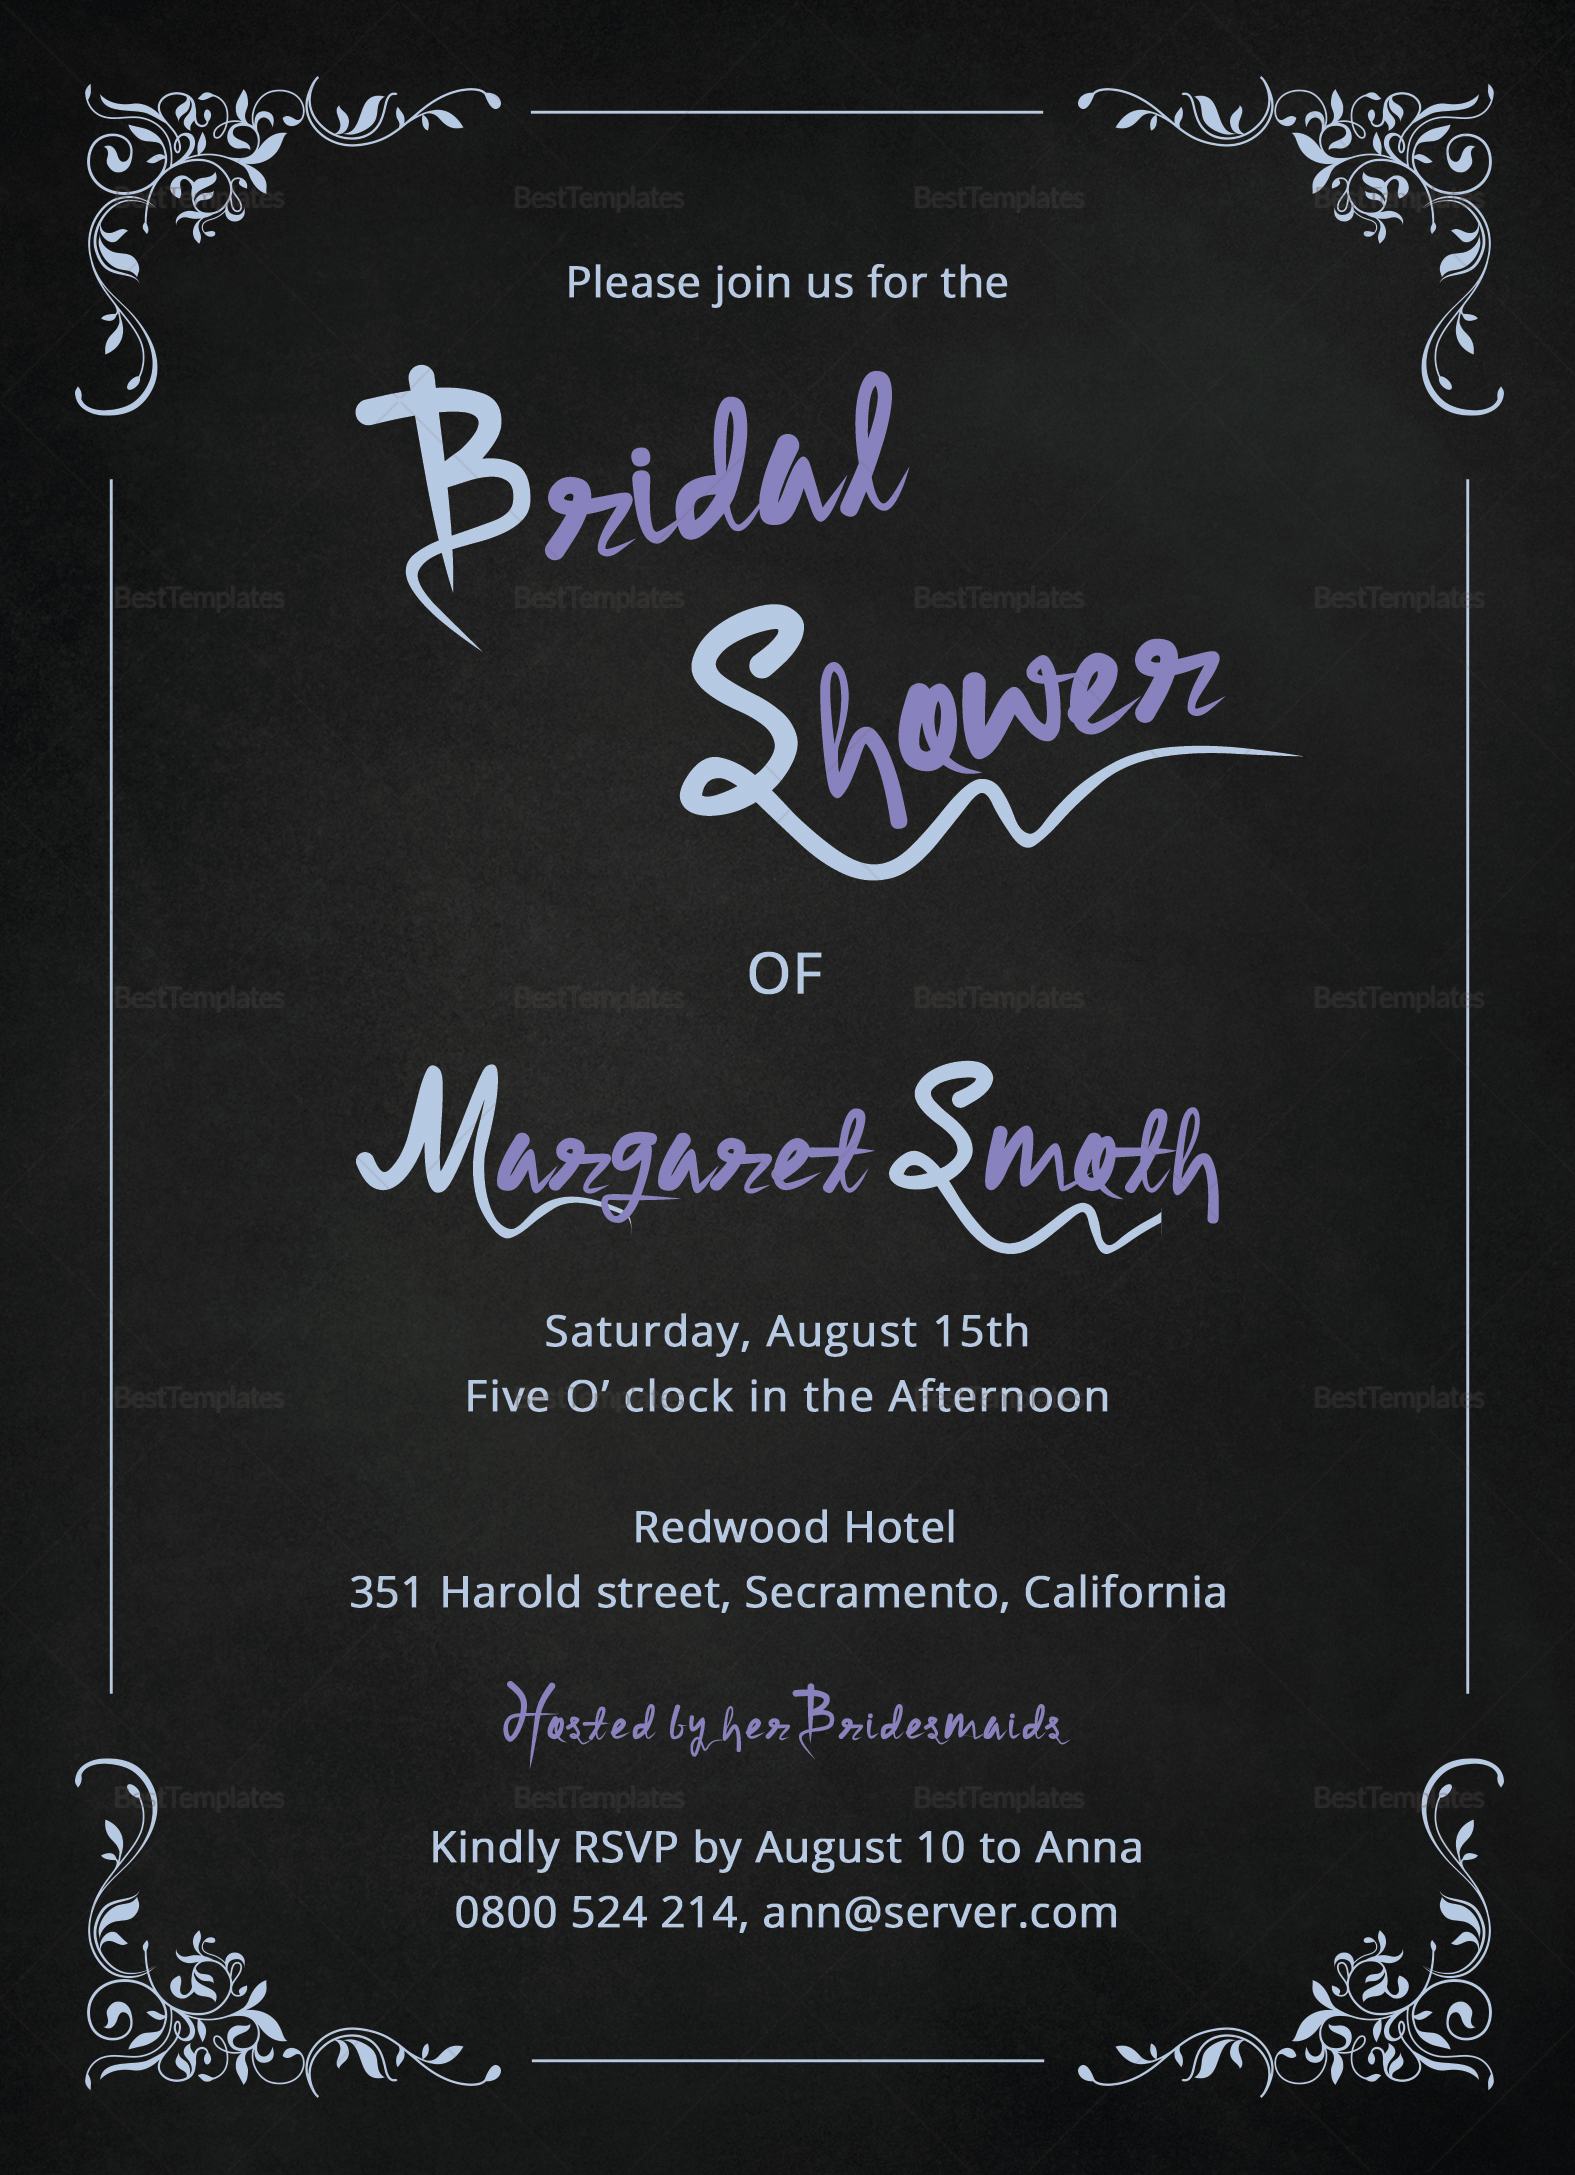 Chalkboard Bridal Shower Invitation Design Template In For Microsoft Word